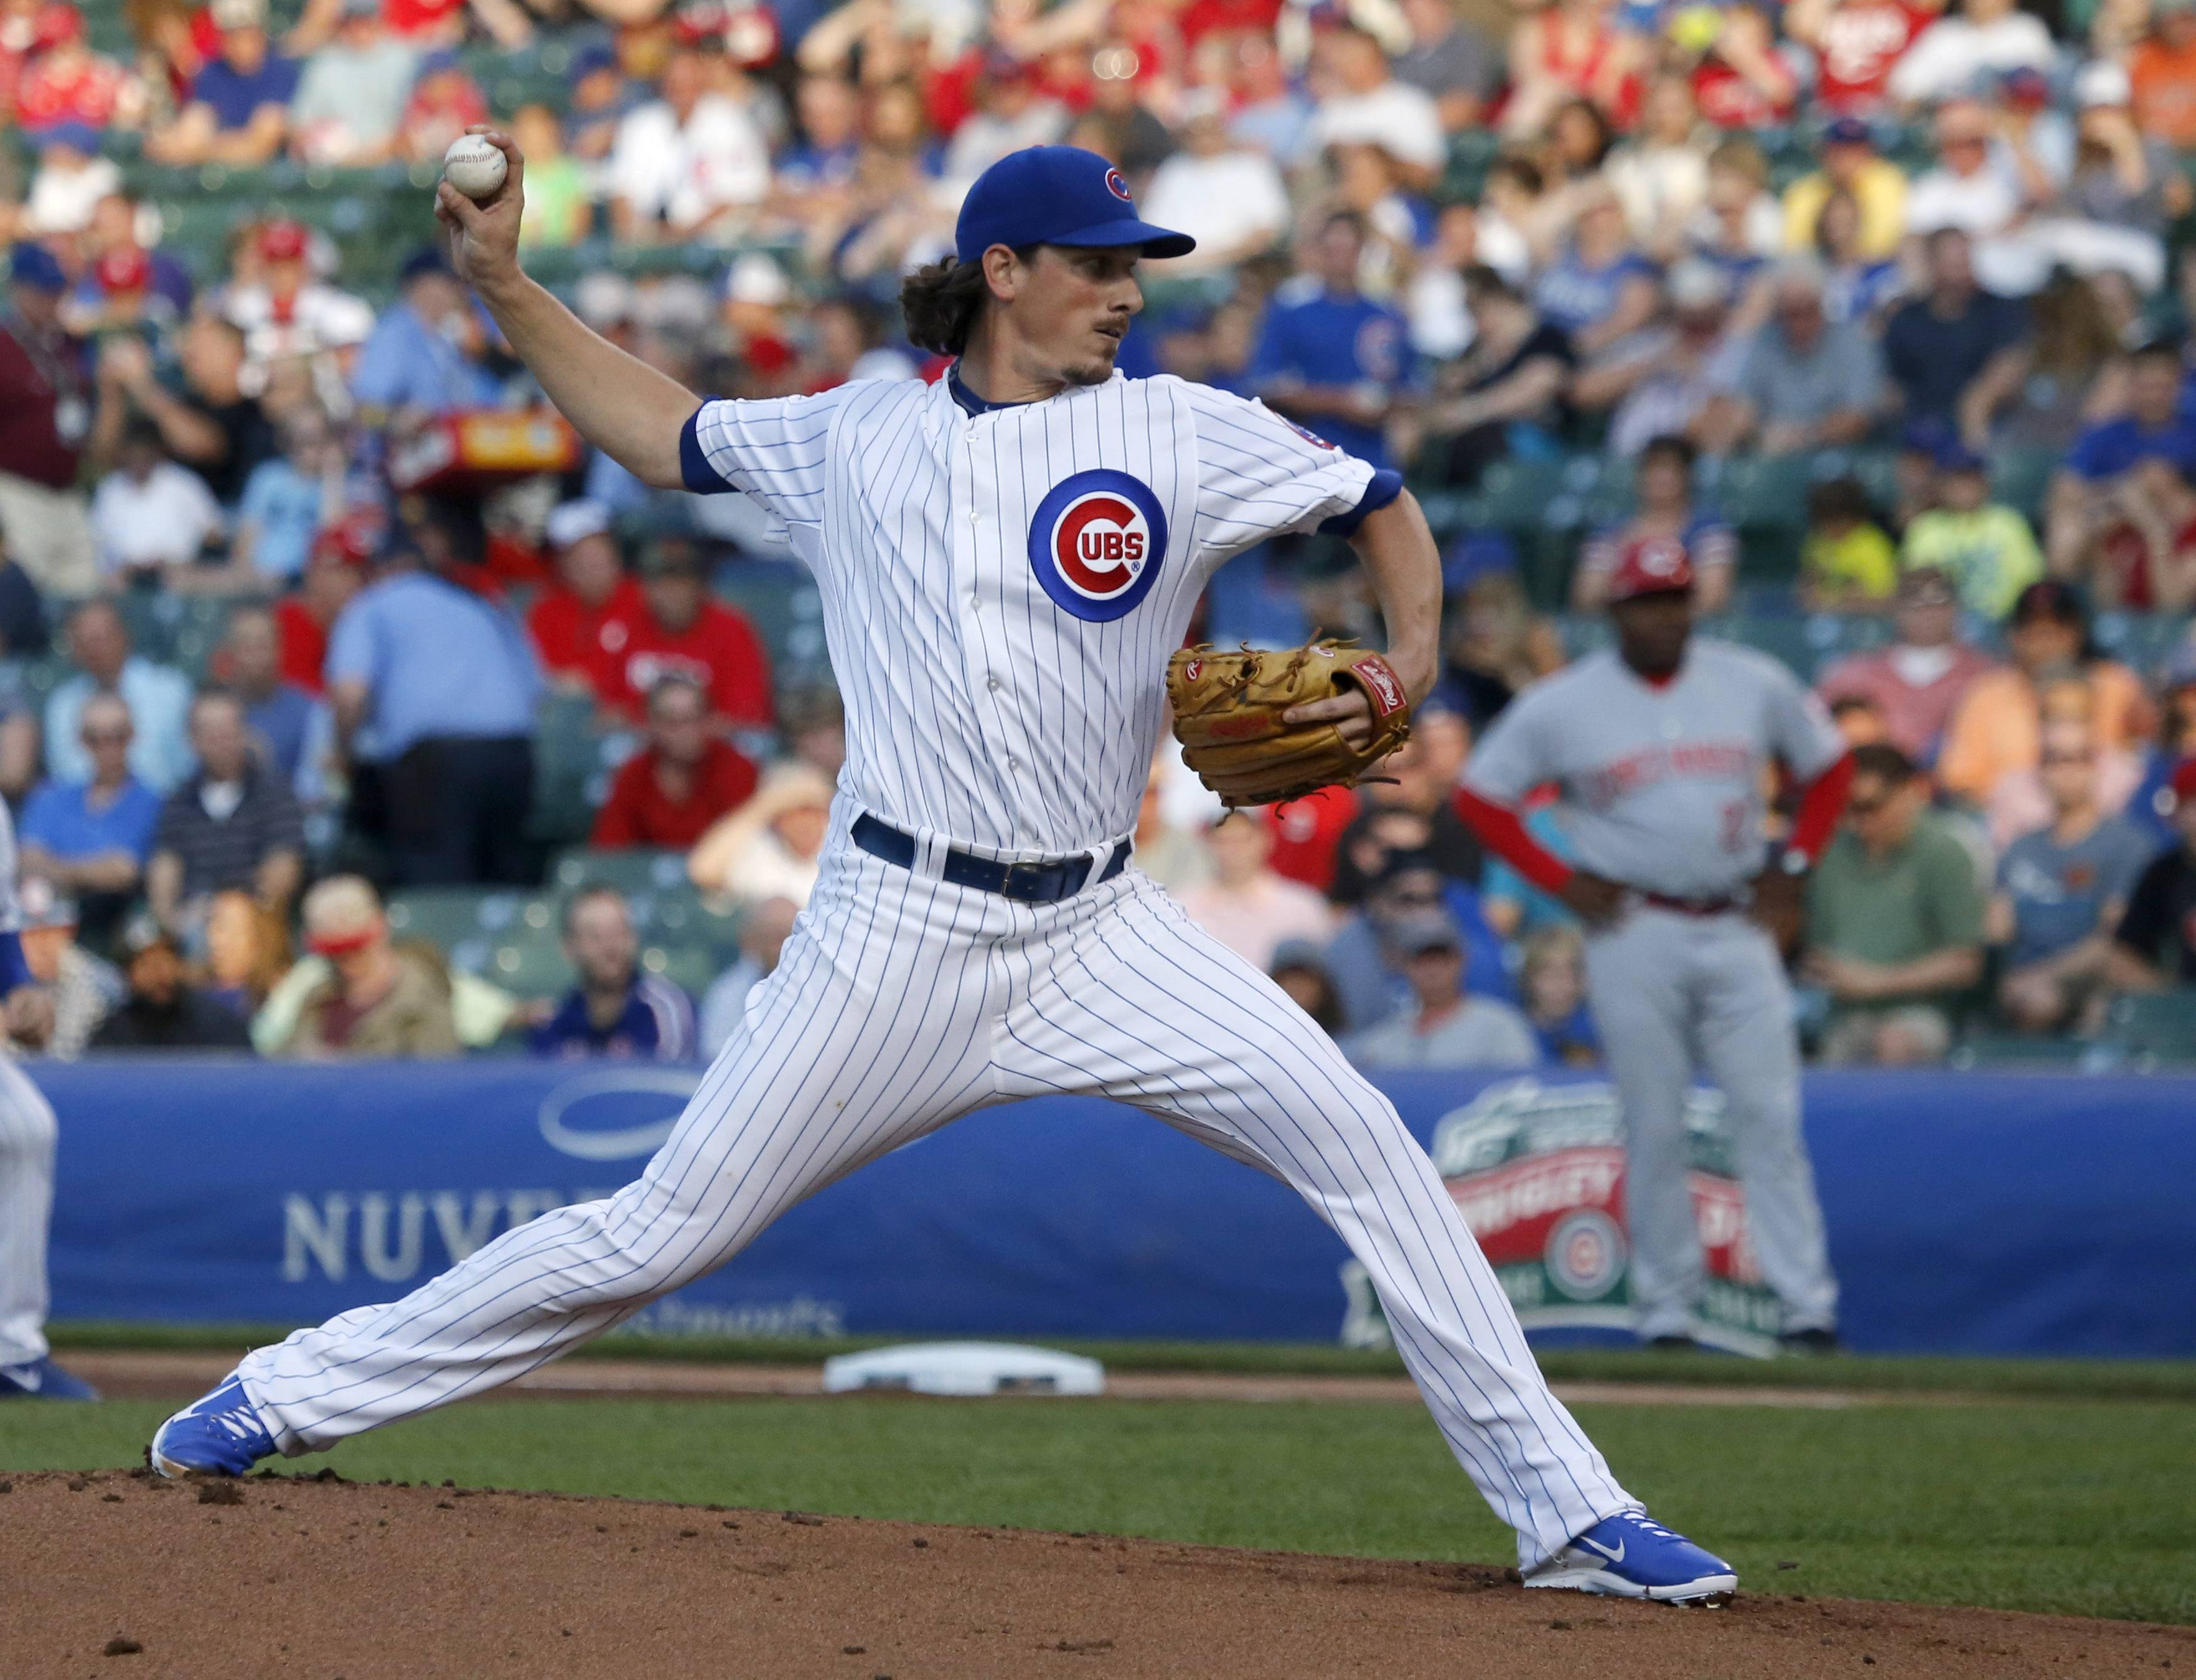 Cubs starting pitcher Jeff Samardzija allowed only 4 hits in 6 innings Monday night in a no-decision against the Reds.